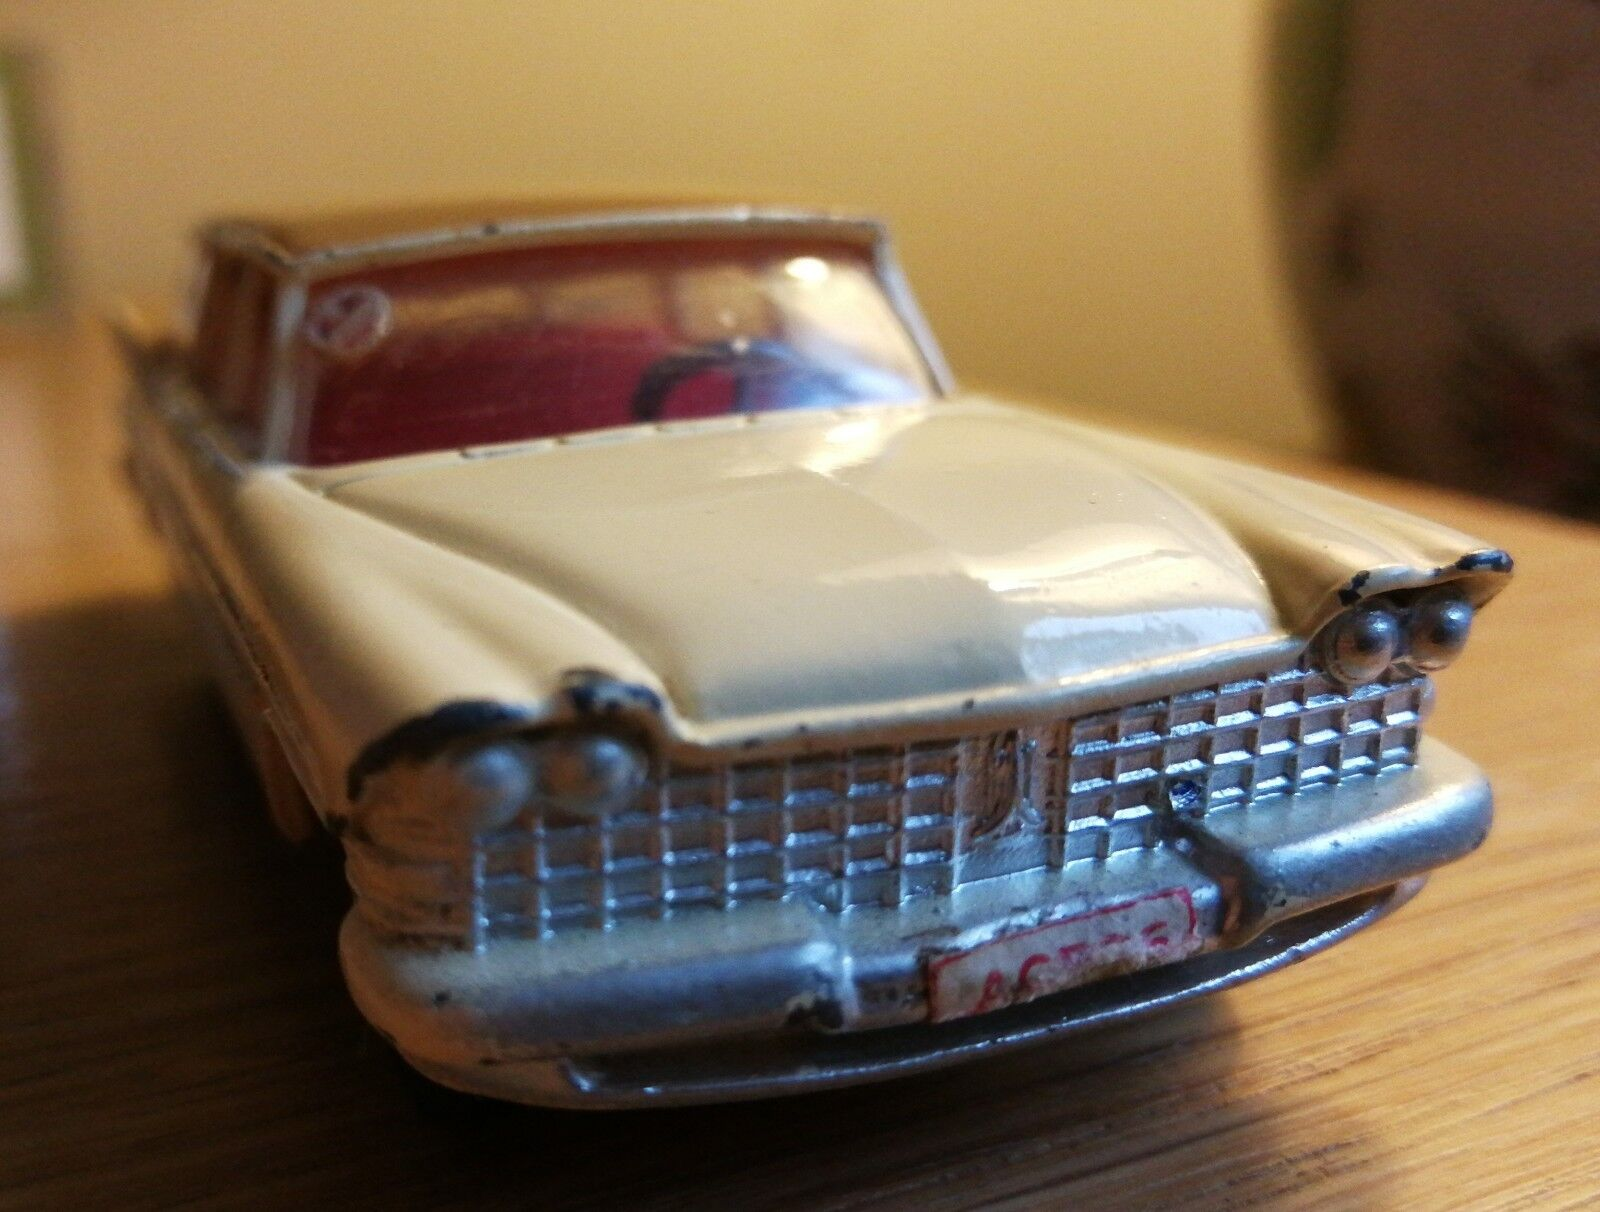 1959 CORGI NO. 219 A PLYMOUTH SPORT SUBURBAN STATION WAGON